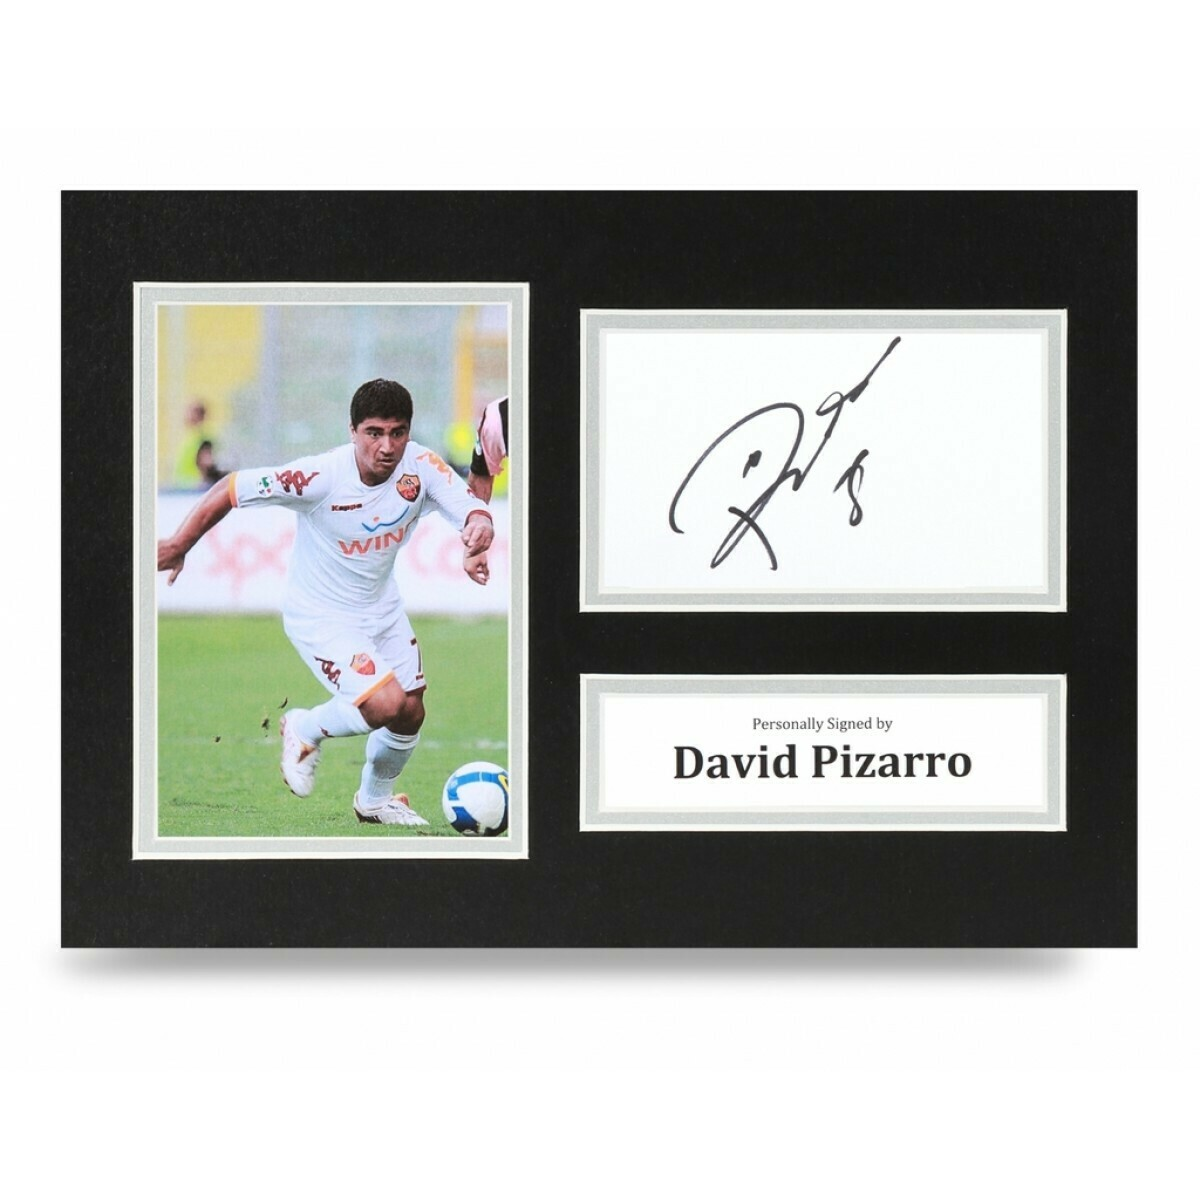 DAVID PIZARRO  DISPLAY  AUTOGRAFATA SIGNED AUTOGRAPH SIGNED DAVID PIZARRO PHOTO SIGNED ROMA Formato A4